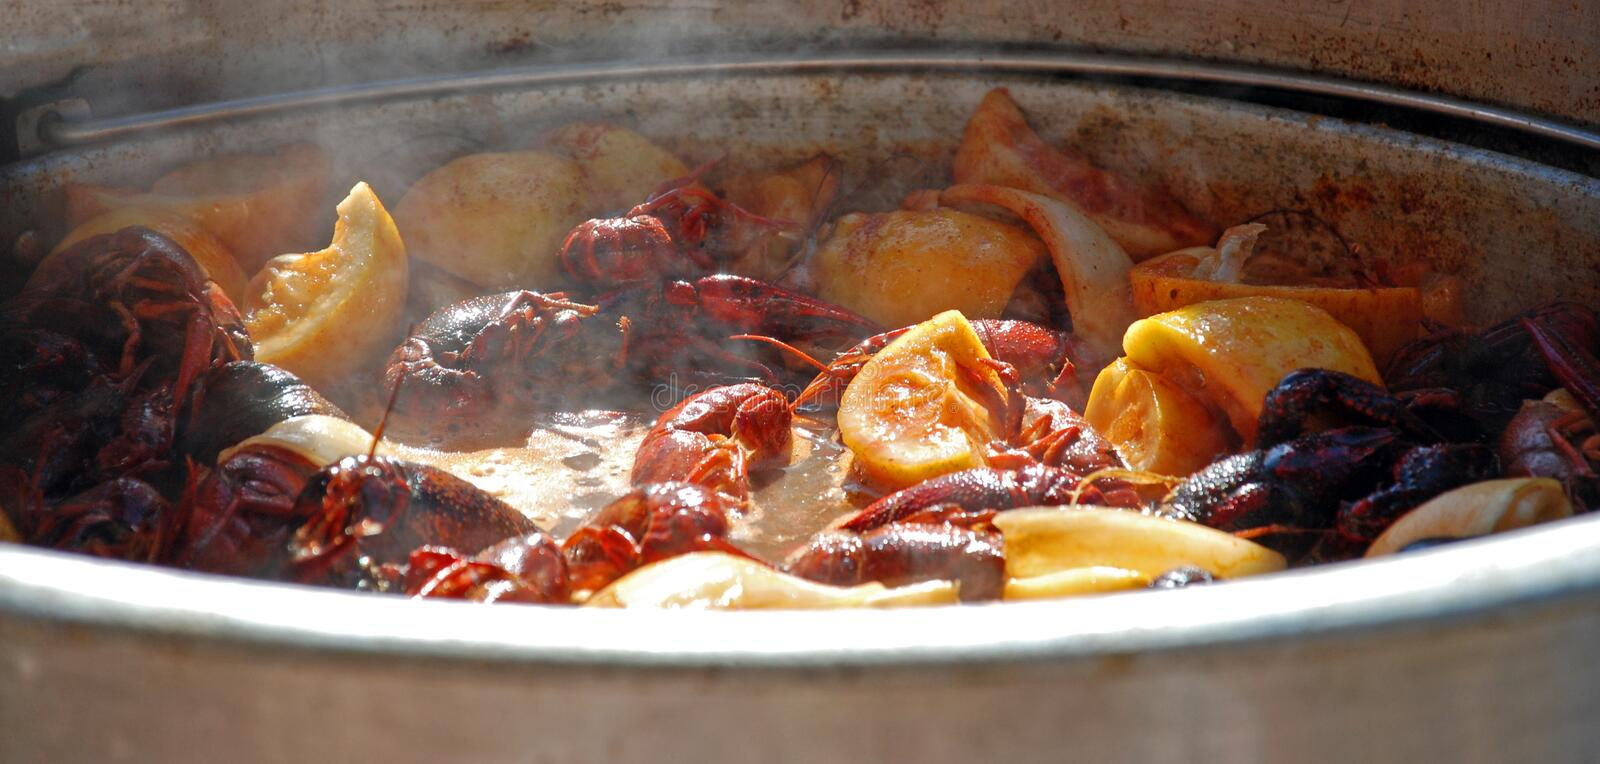 Steaming Crawfish. Boiling hot crawfish, lemon wedges and seasonings simmer at a low country seafood feast royalty free stock photography